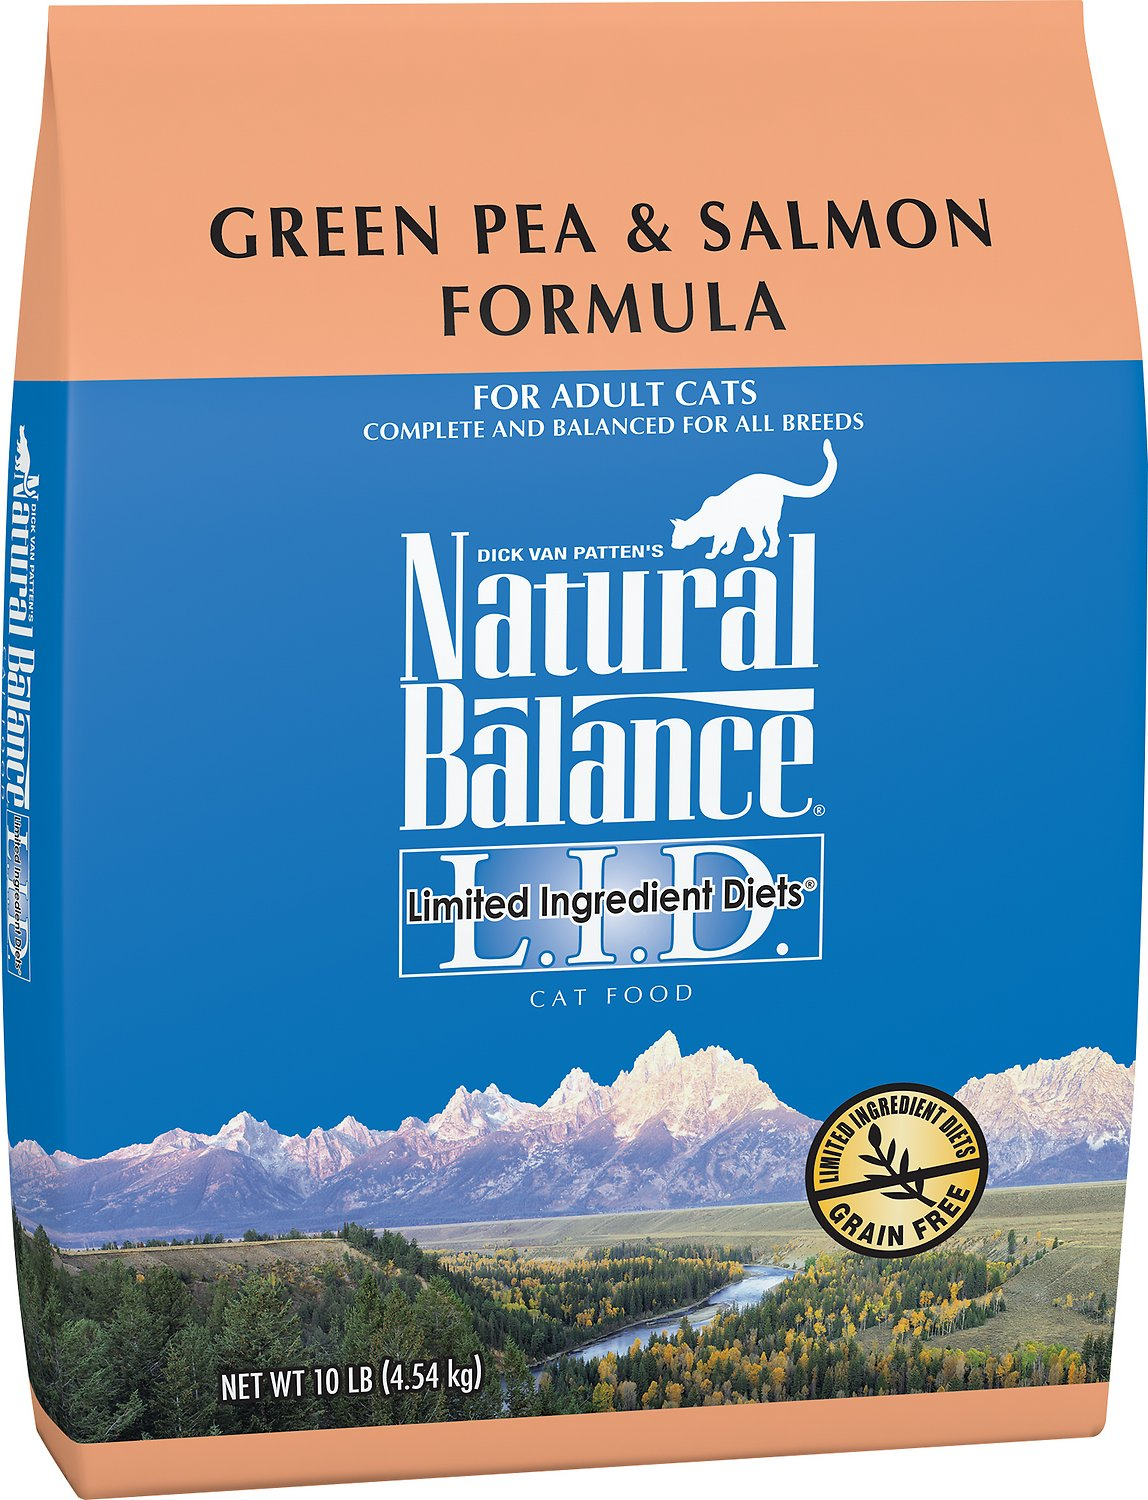 Natural Balance L.I.D. Limited Ingredient Diets Green Pea & Salmon Formula Grain-Free Dry Cat Food Image